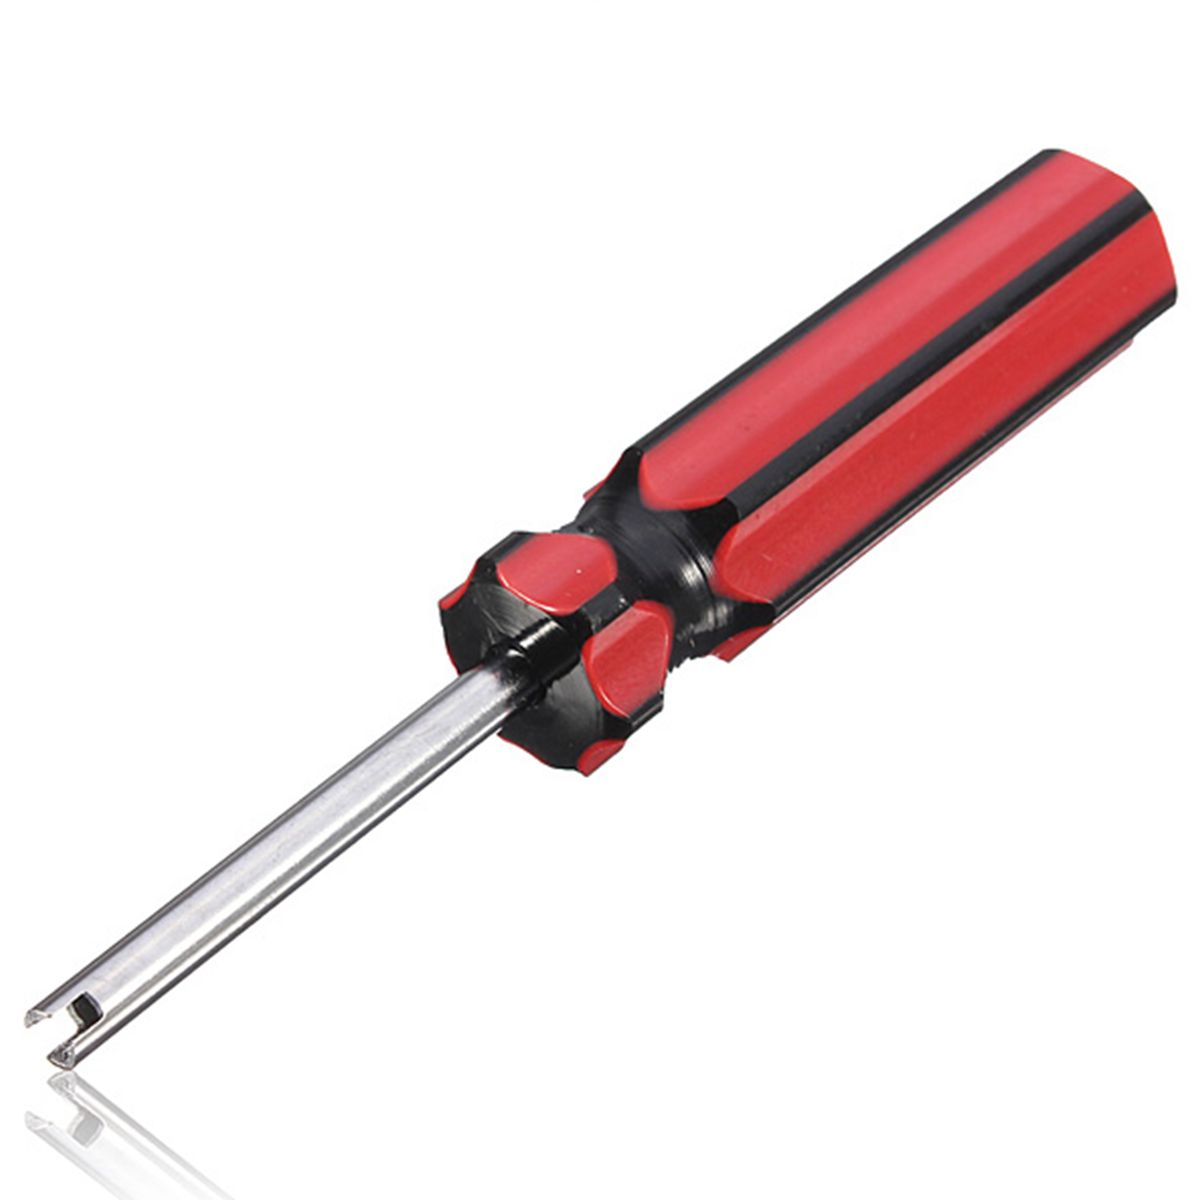 Car Truck Motorcycle Bicycle Screwdriver Valve Stem Core Remover Tire Repair Install Tool